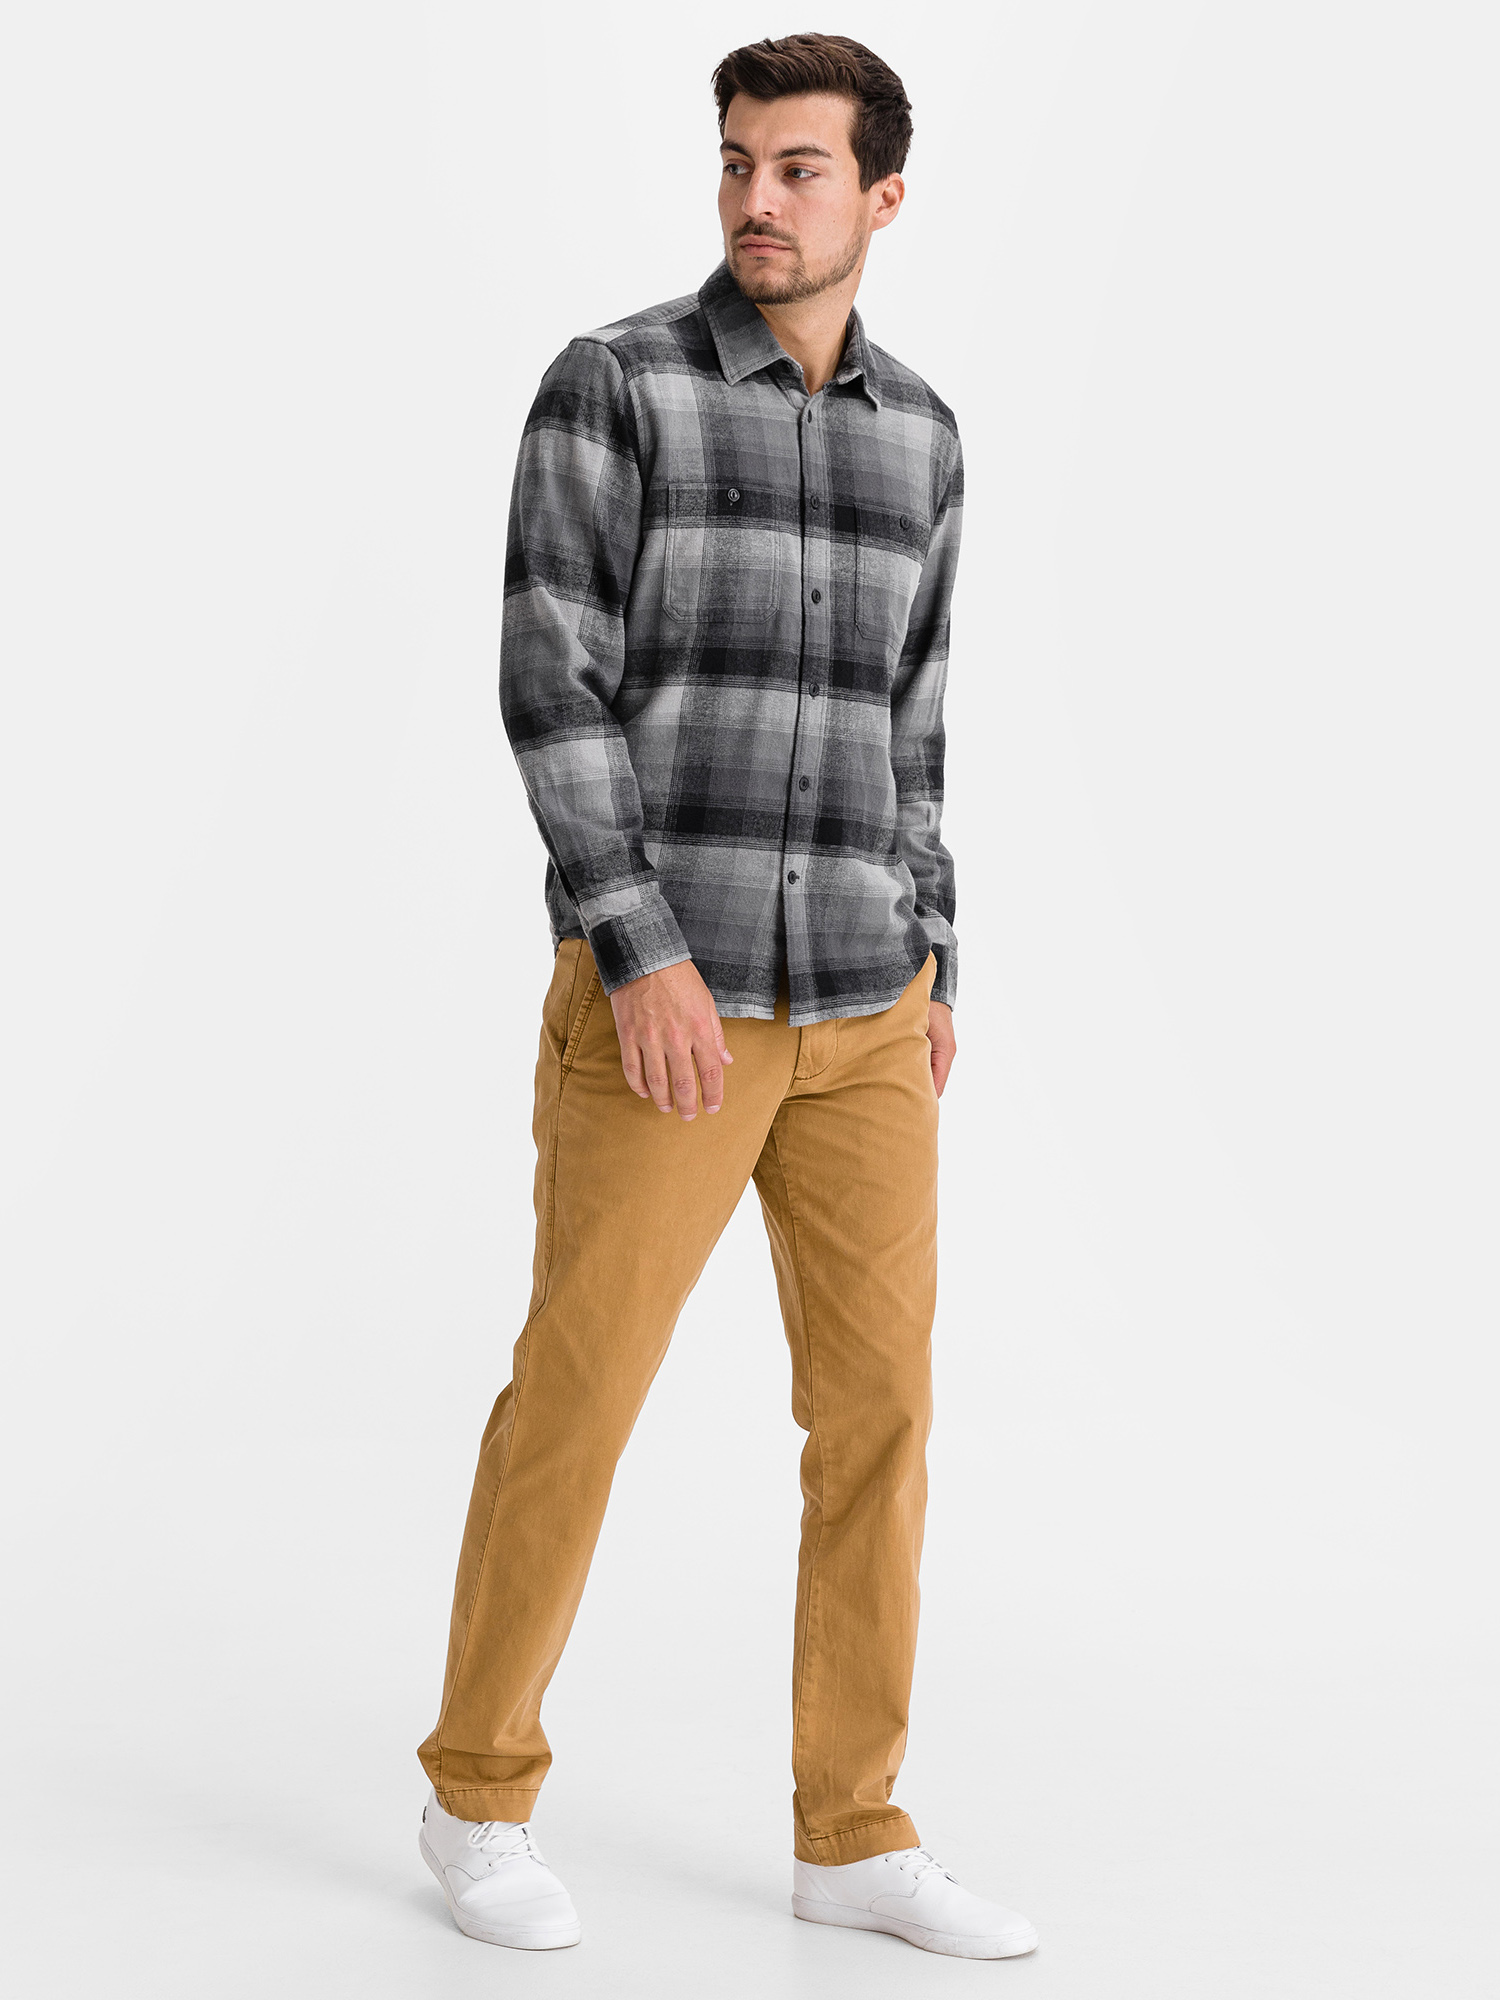 Košeľa flannel shirt in untucked fit (4)